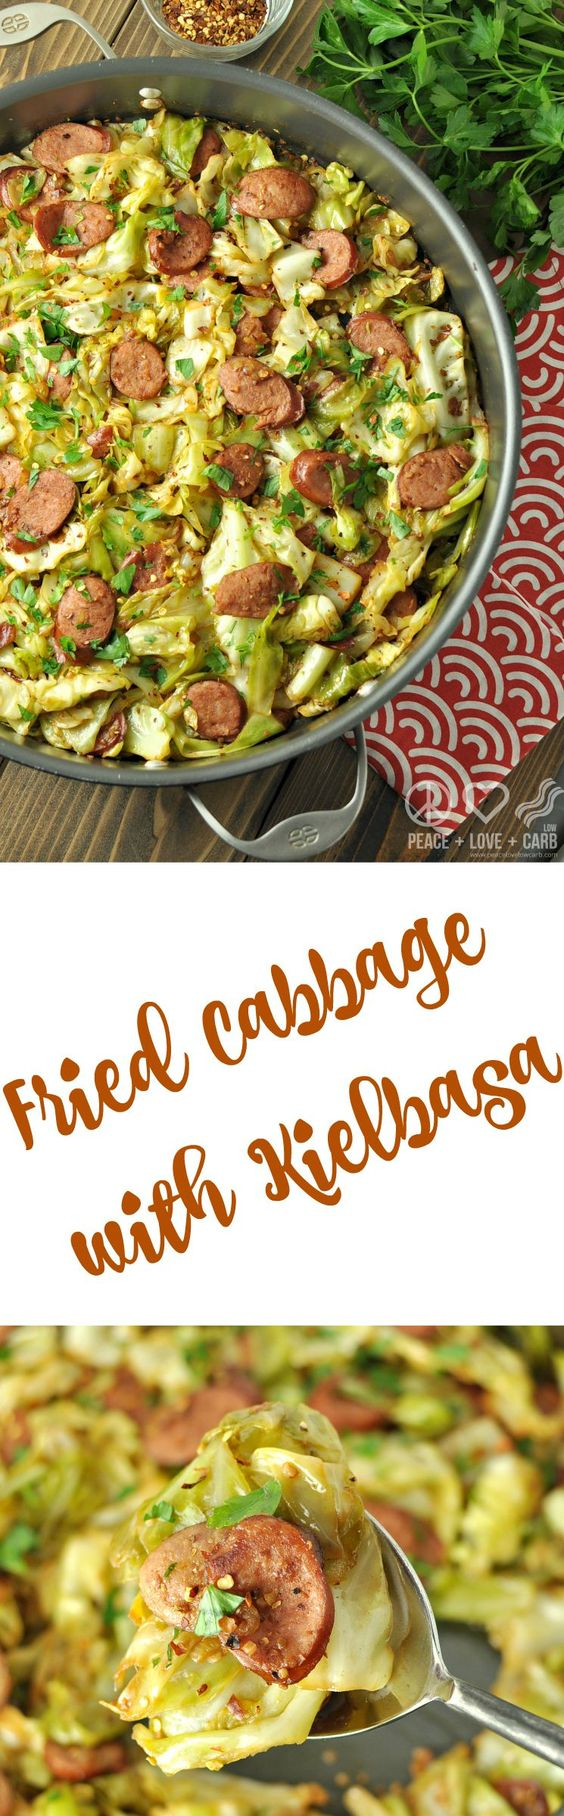 Fried Cabbage with Kielbasa - Low Carb, Gluten Free   Peace Love and Low Carb   peaceloveandlowcarb.com